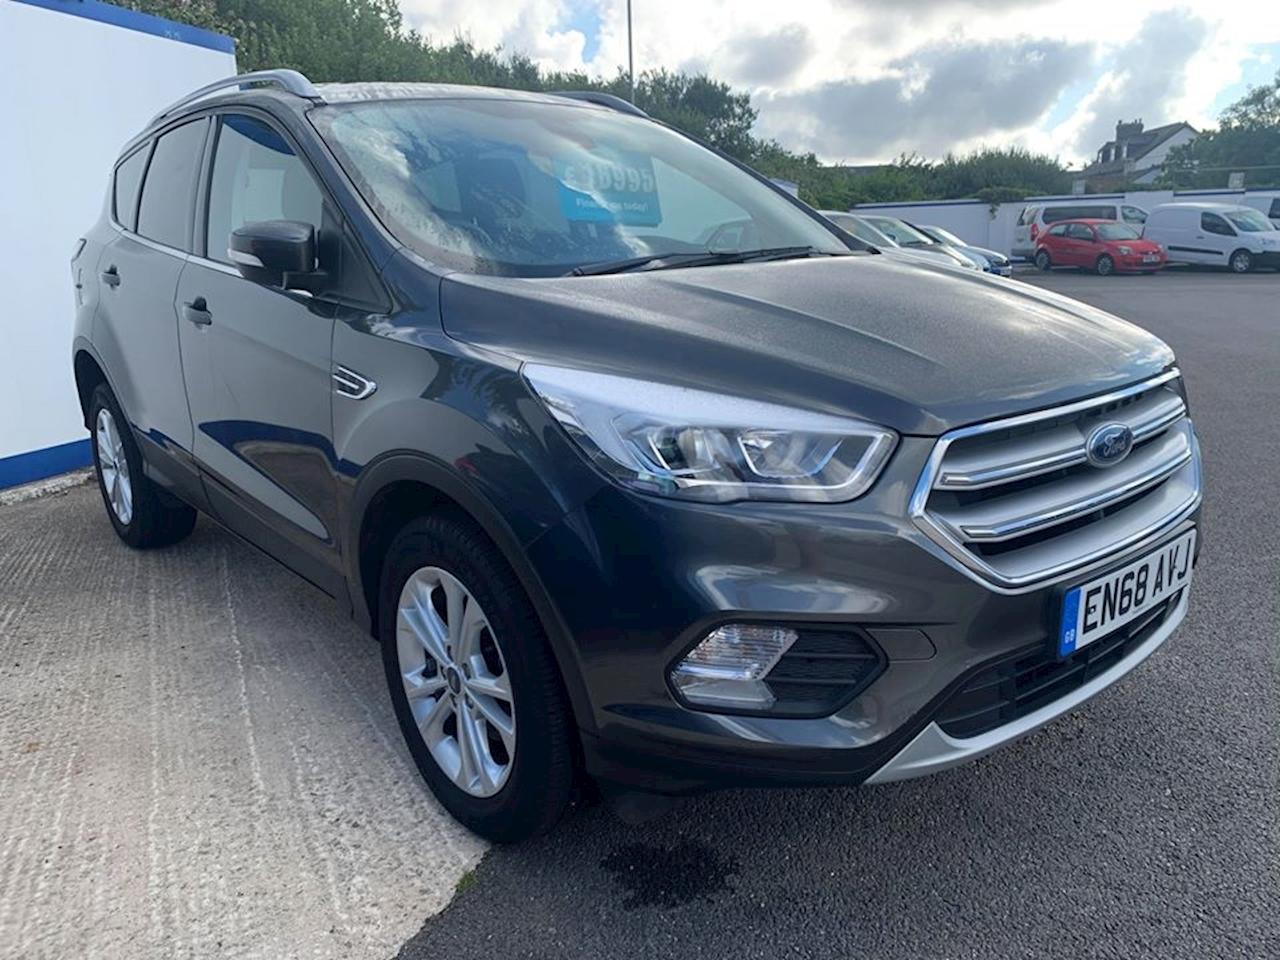 Ford Kuga Titanium SUV 1.5 Manual Diesel